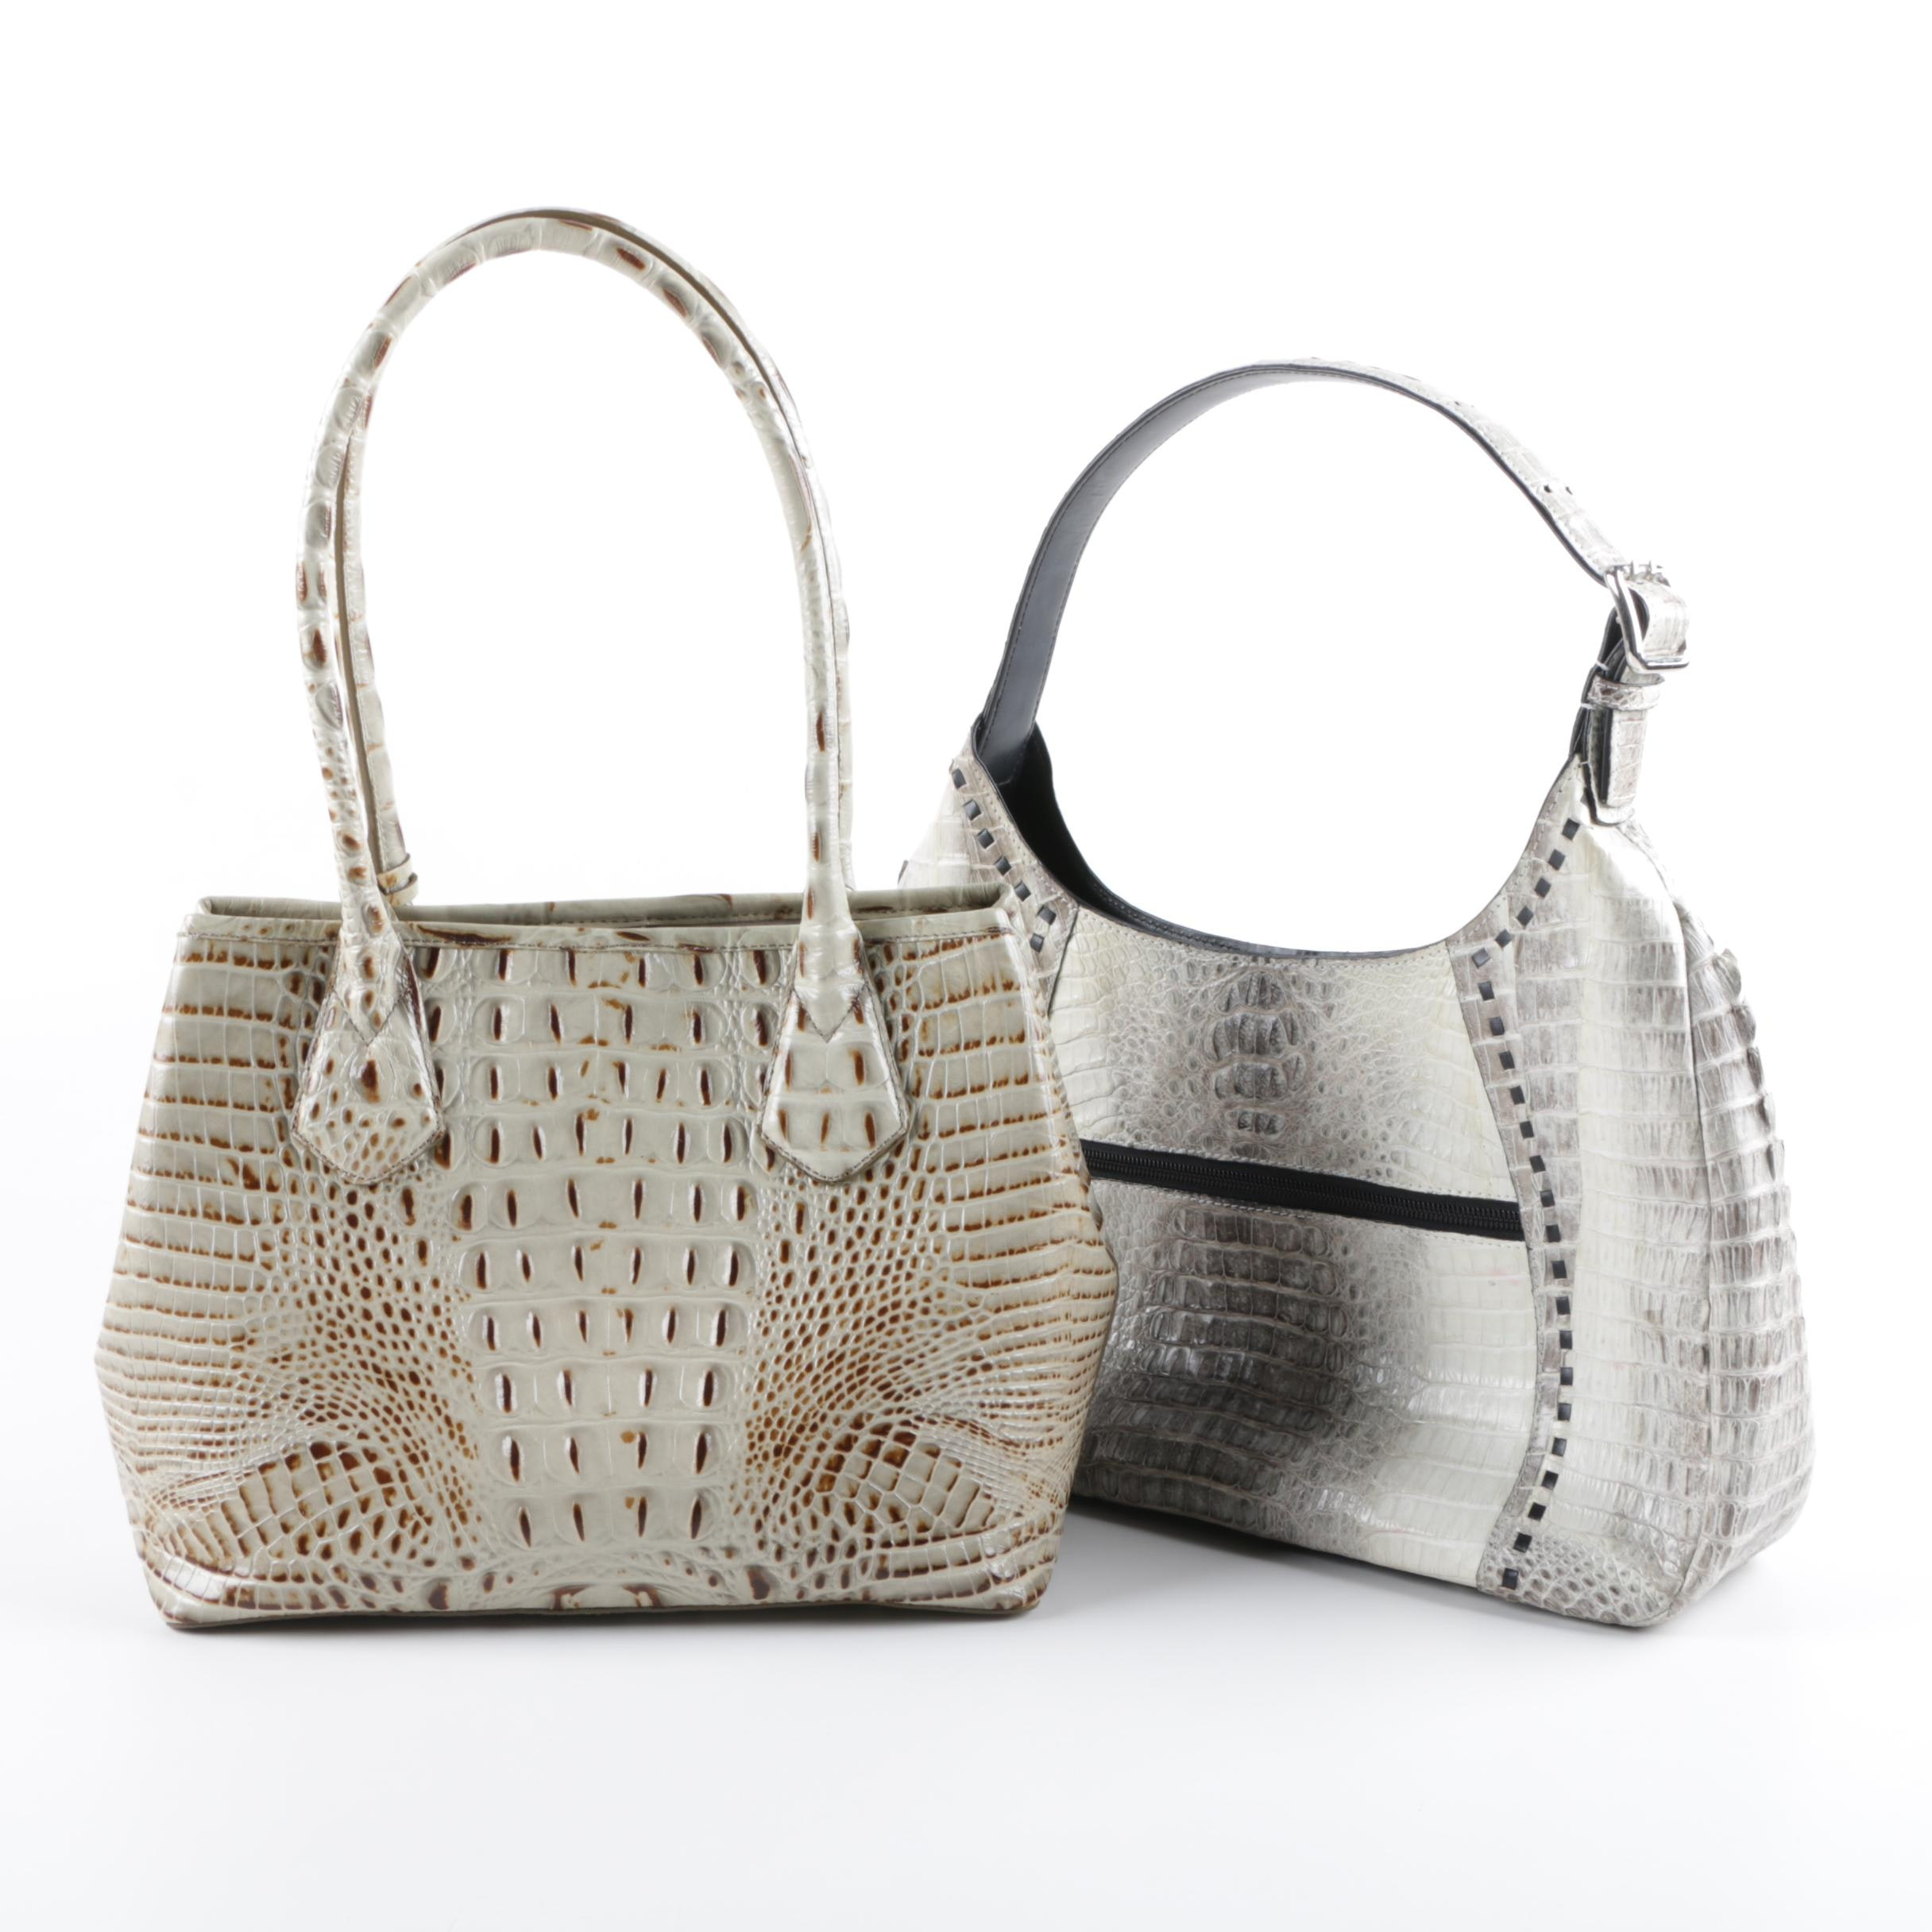 Nina Raye Crocodile Skin and Brahmin Embossed Leather Handbags